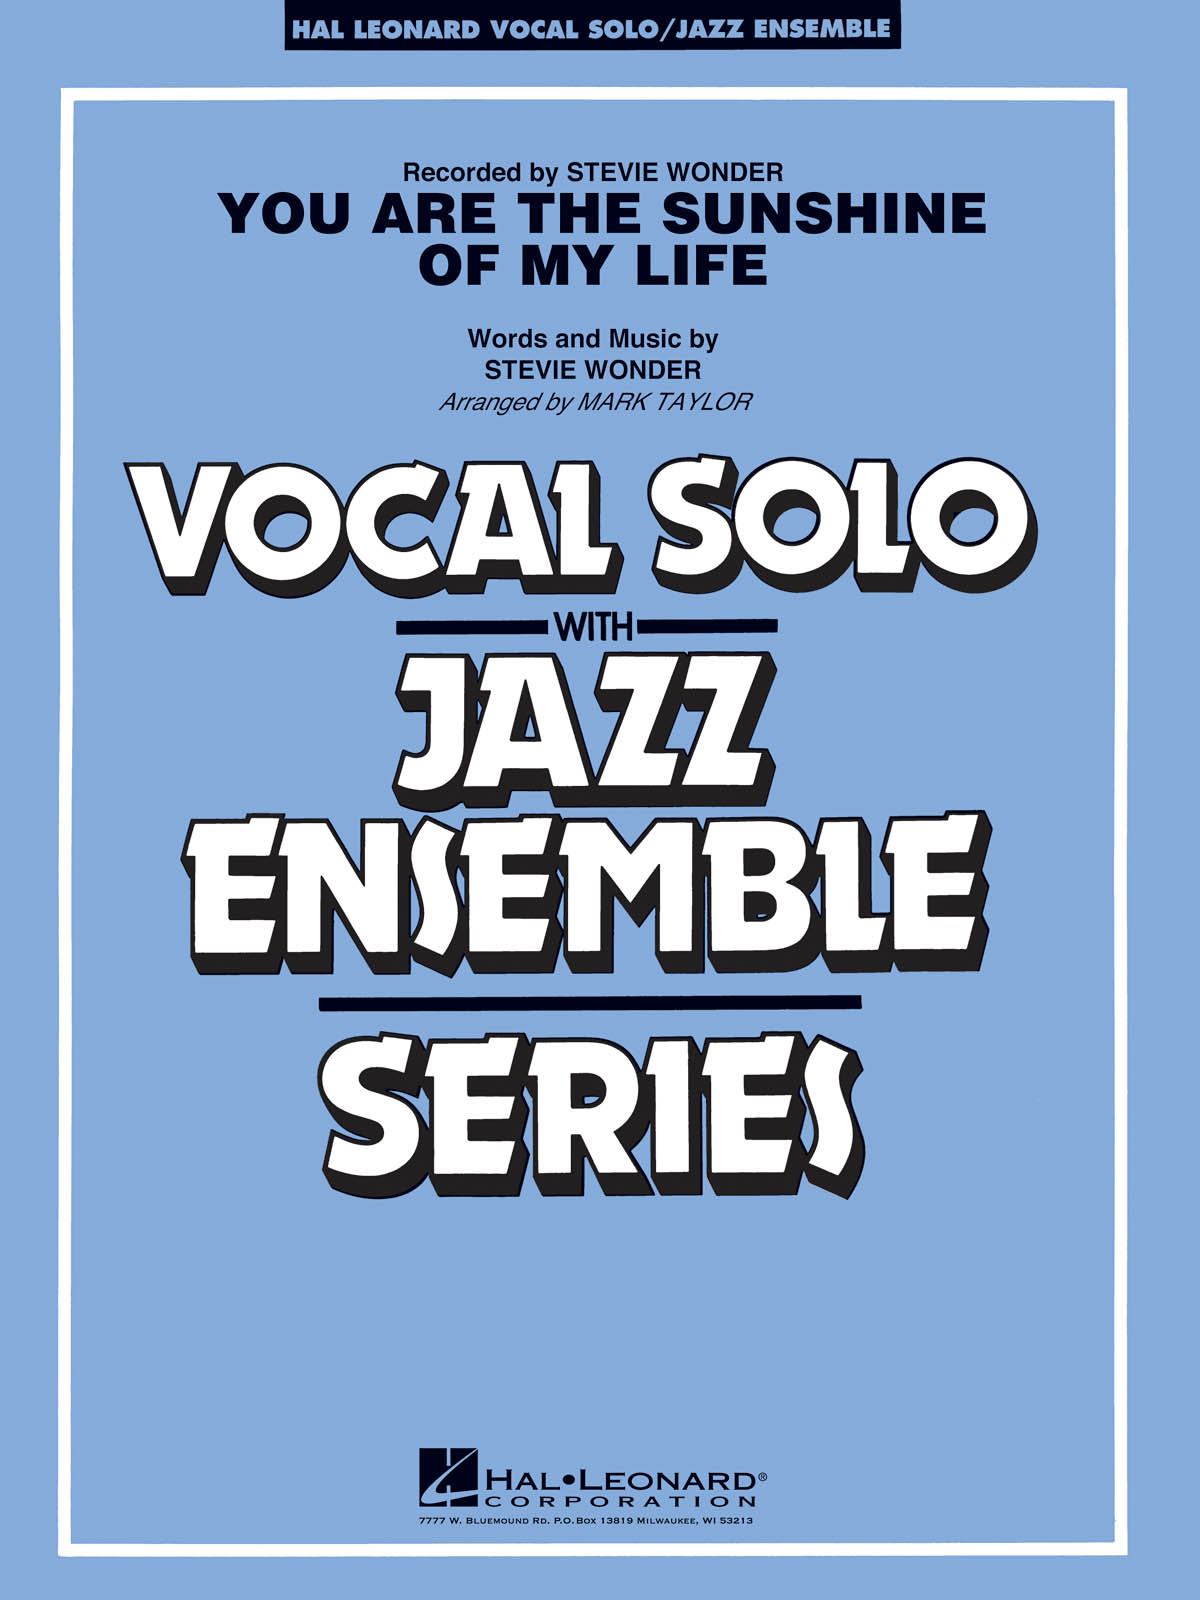 You Are the Sunshine of My Life (Key: C): Vocal Solo with Jazz Ensemble